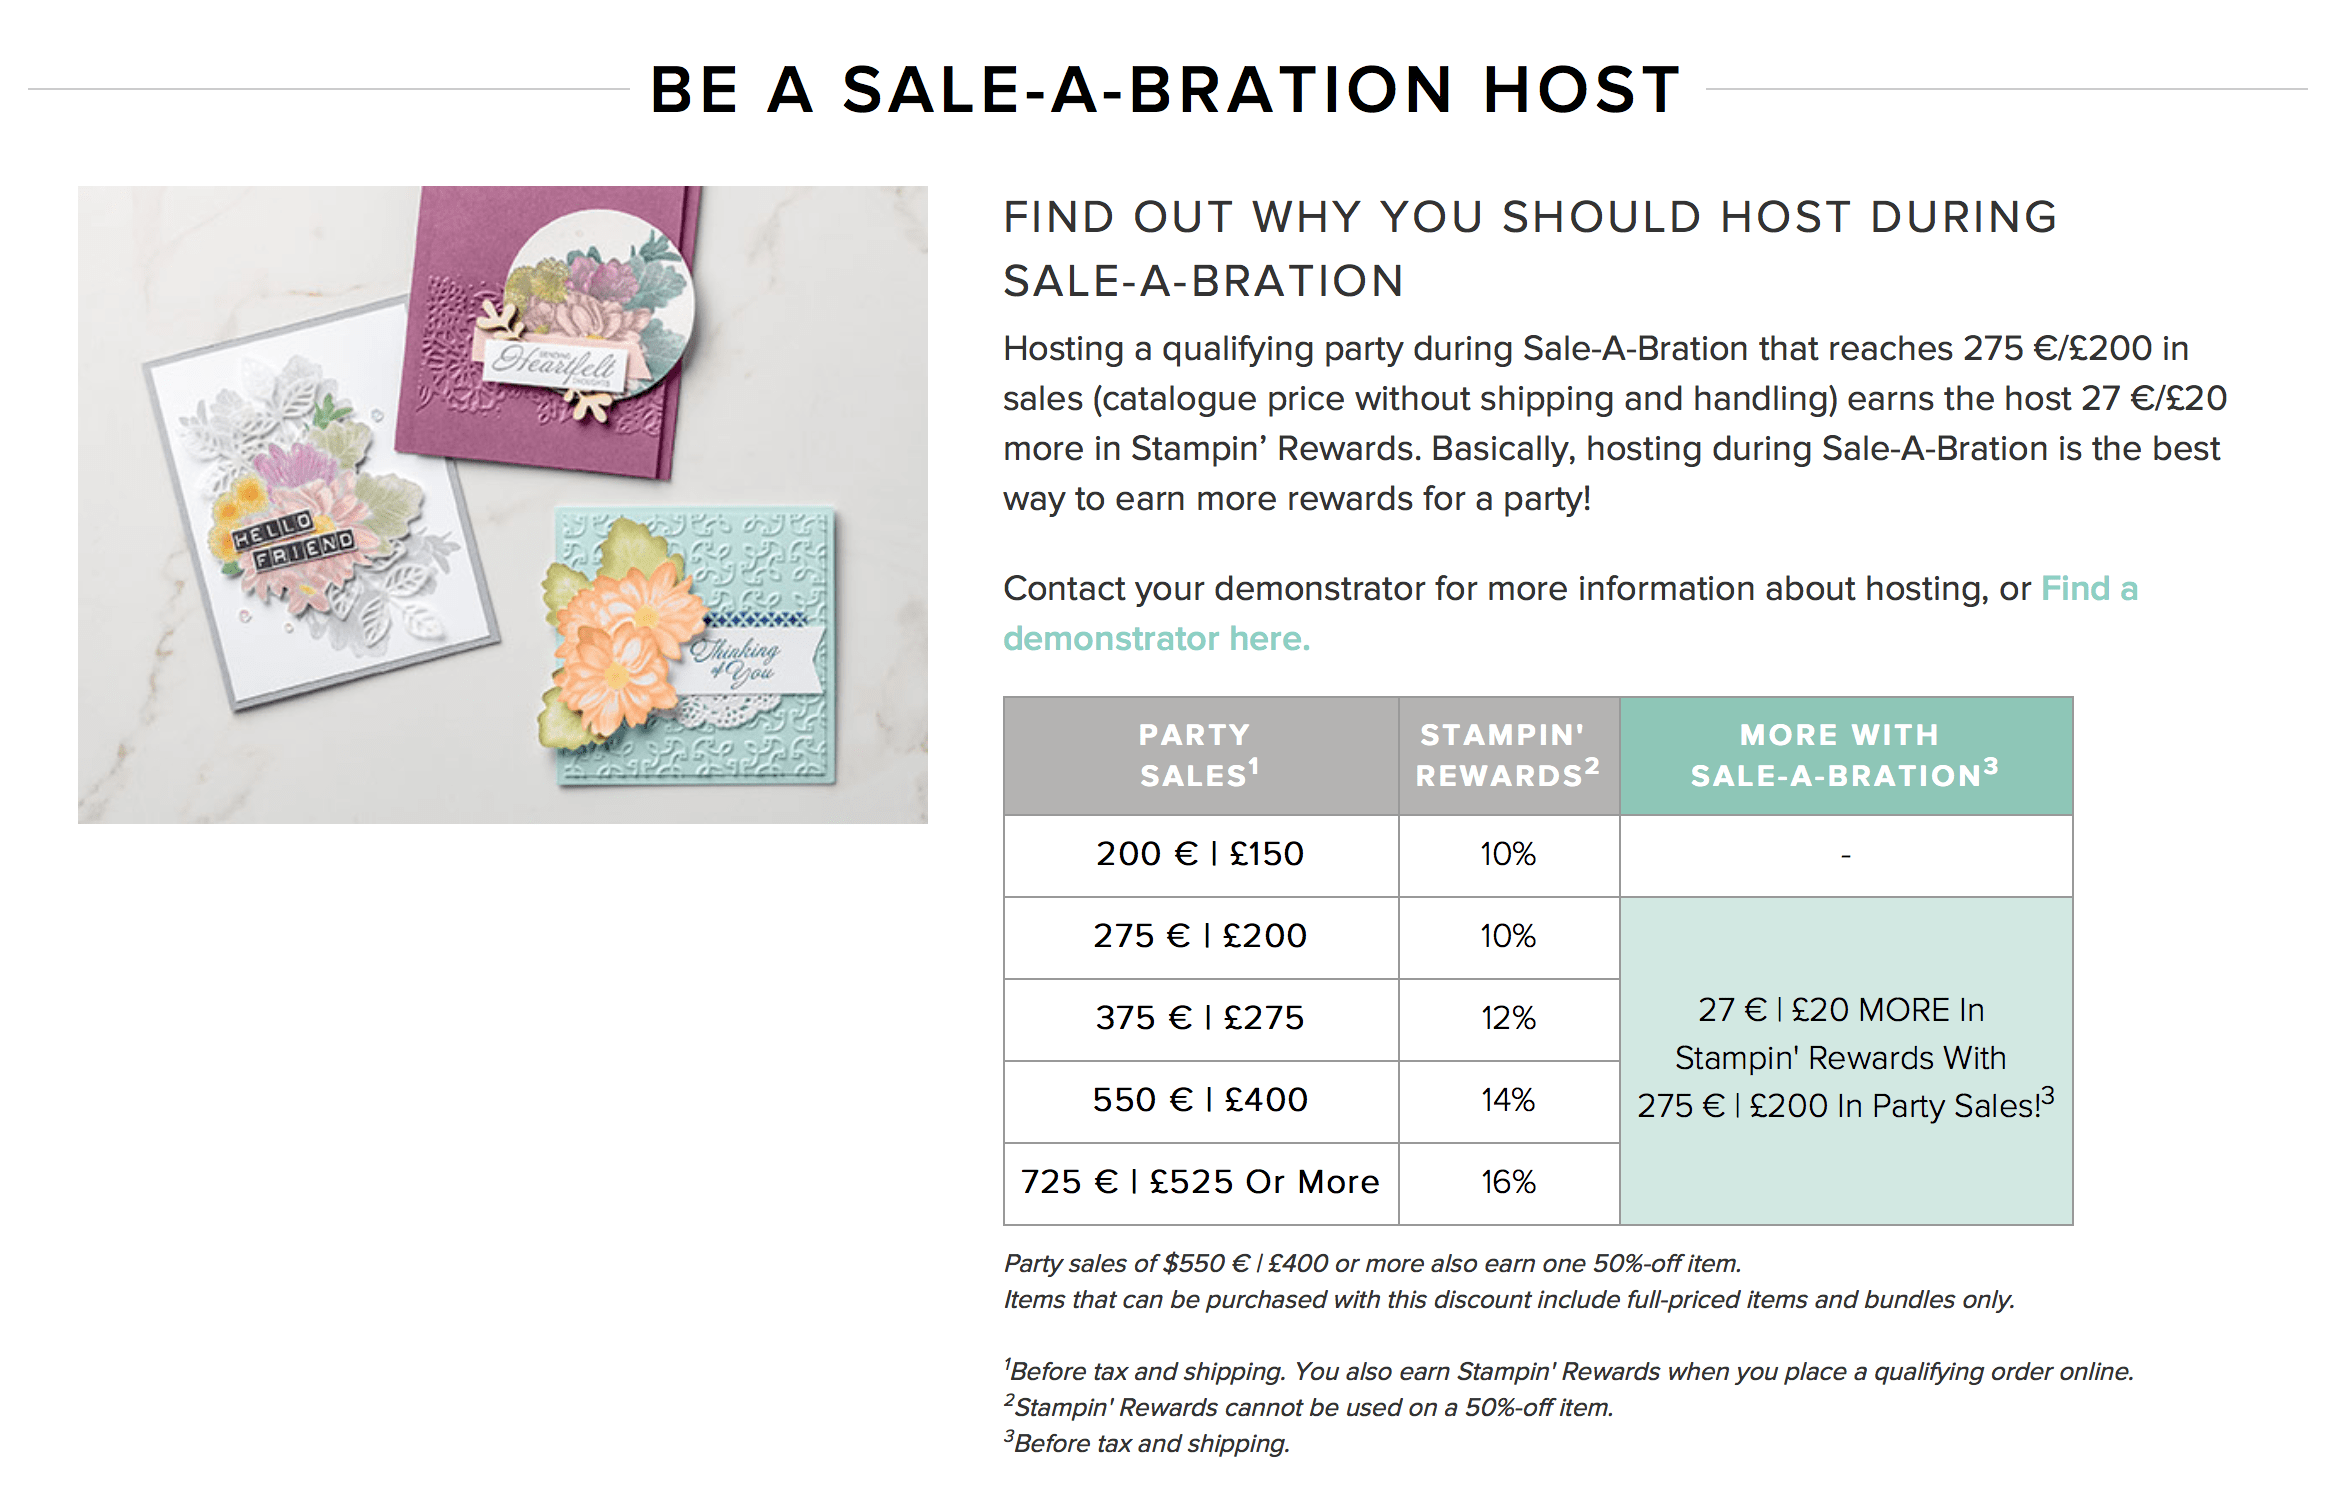 Extra Stampin Rewards in Saleabration